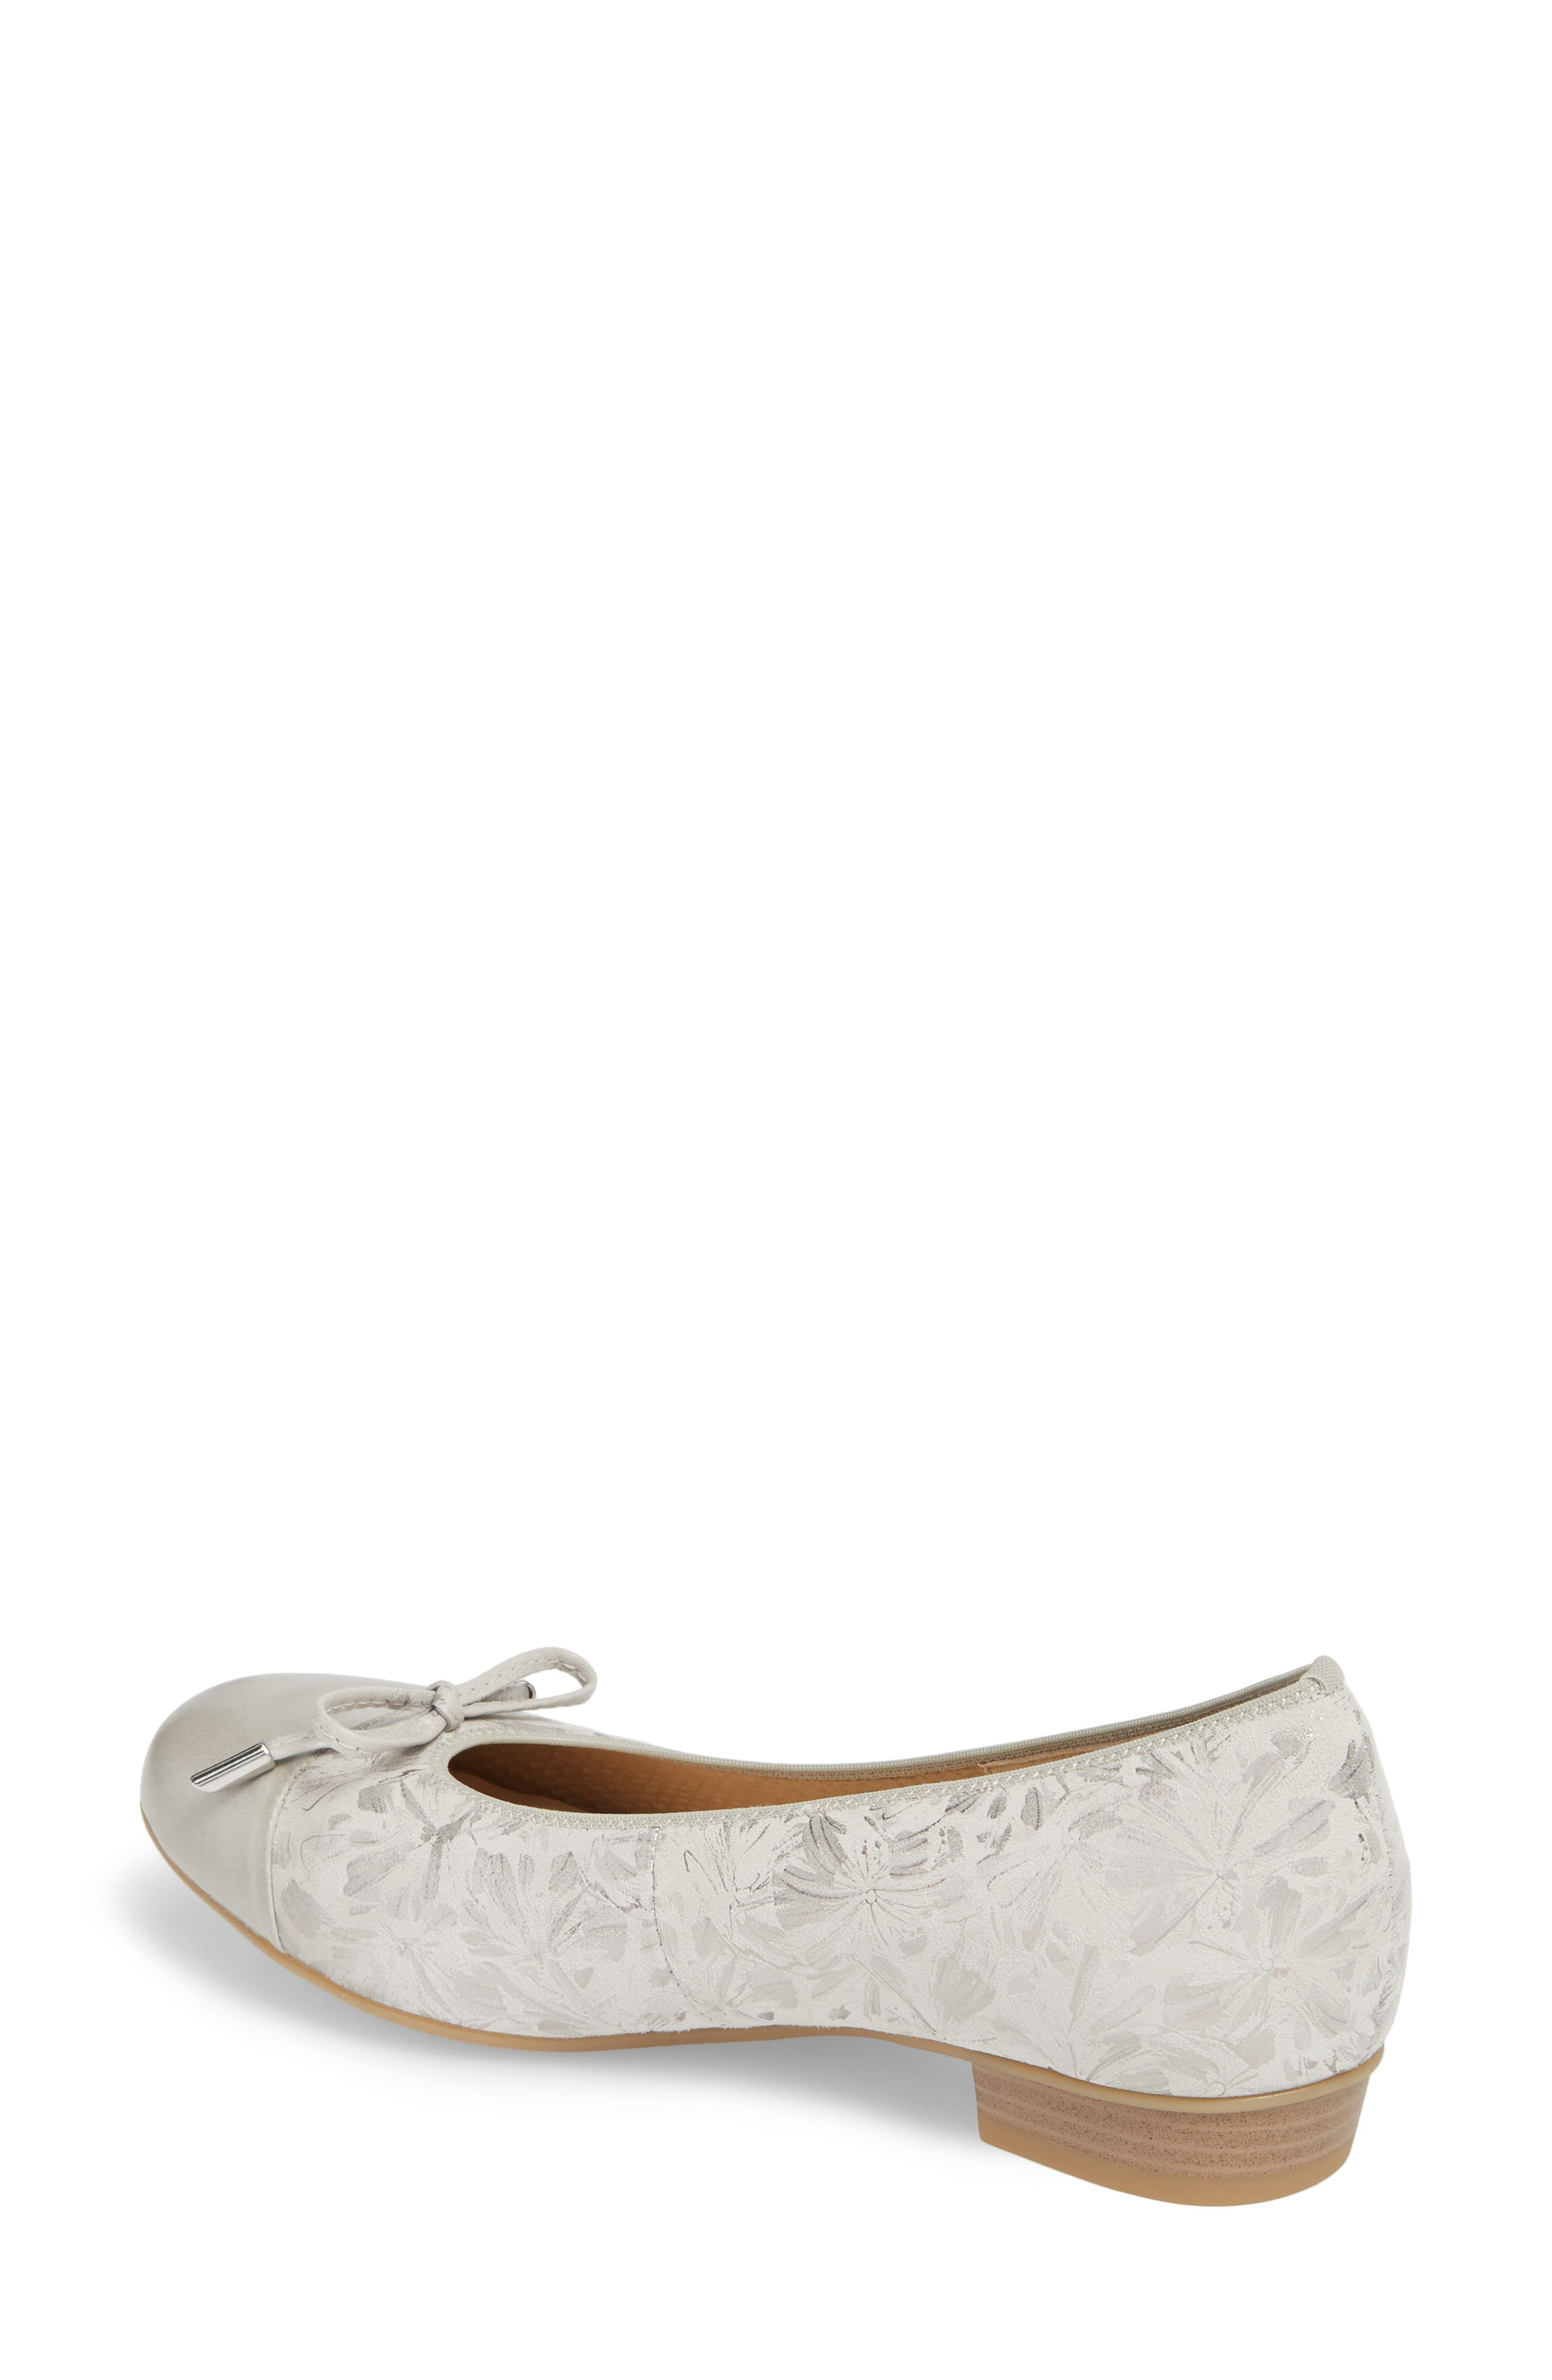 'Betty' Cap Toe Flat,                             Alternate thumbnail 2, color,                             Silver Leather